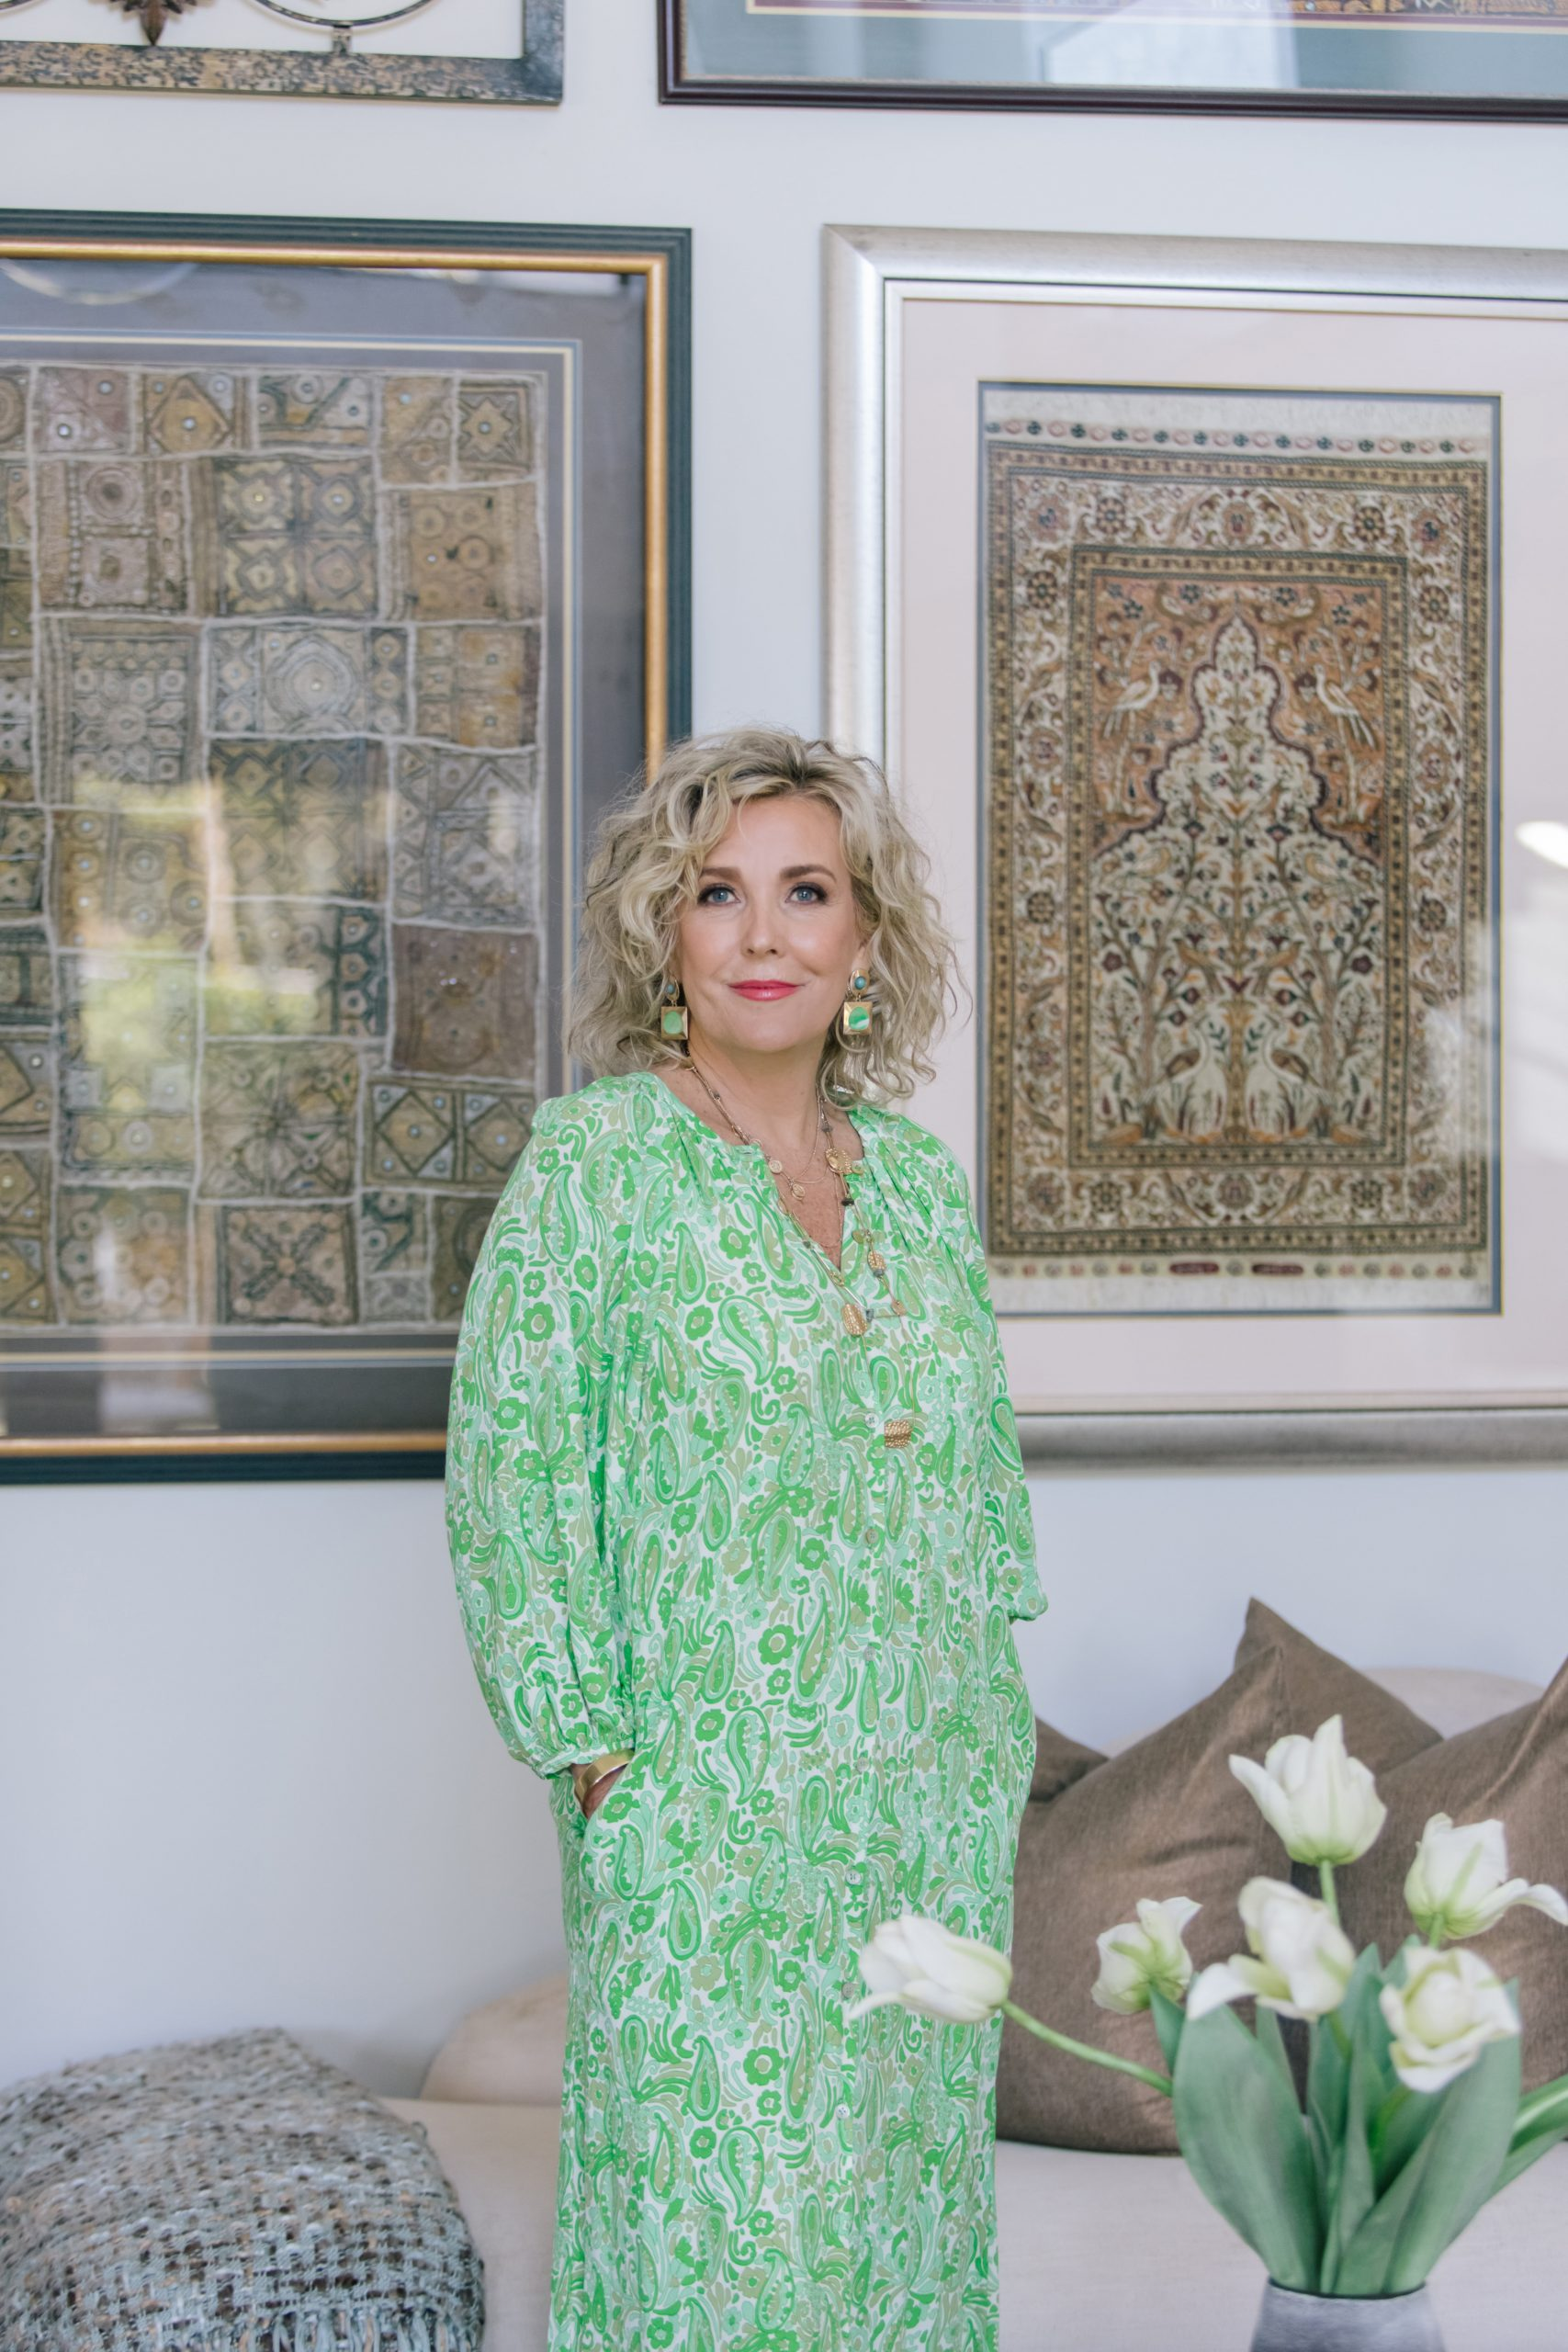 Image Consultant, Cindy Meade in East London South Africa